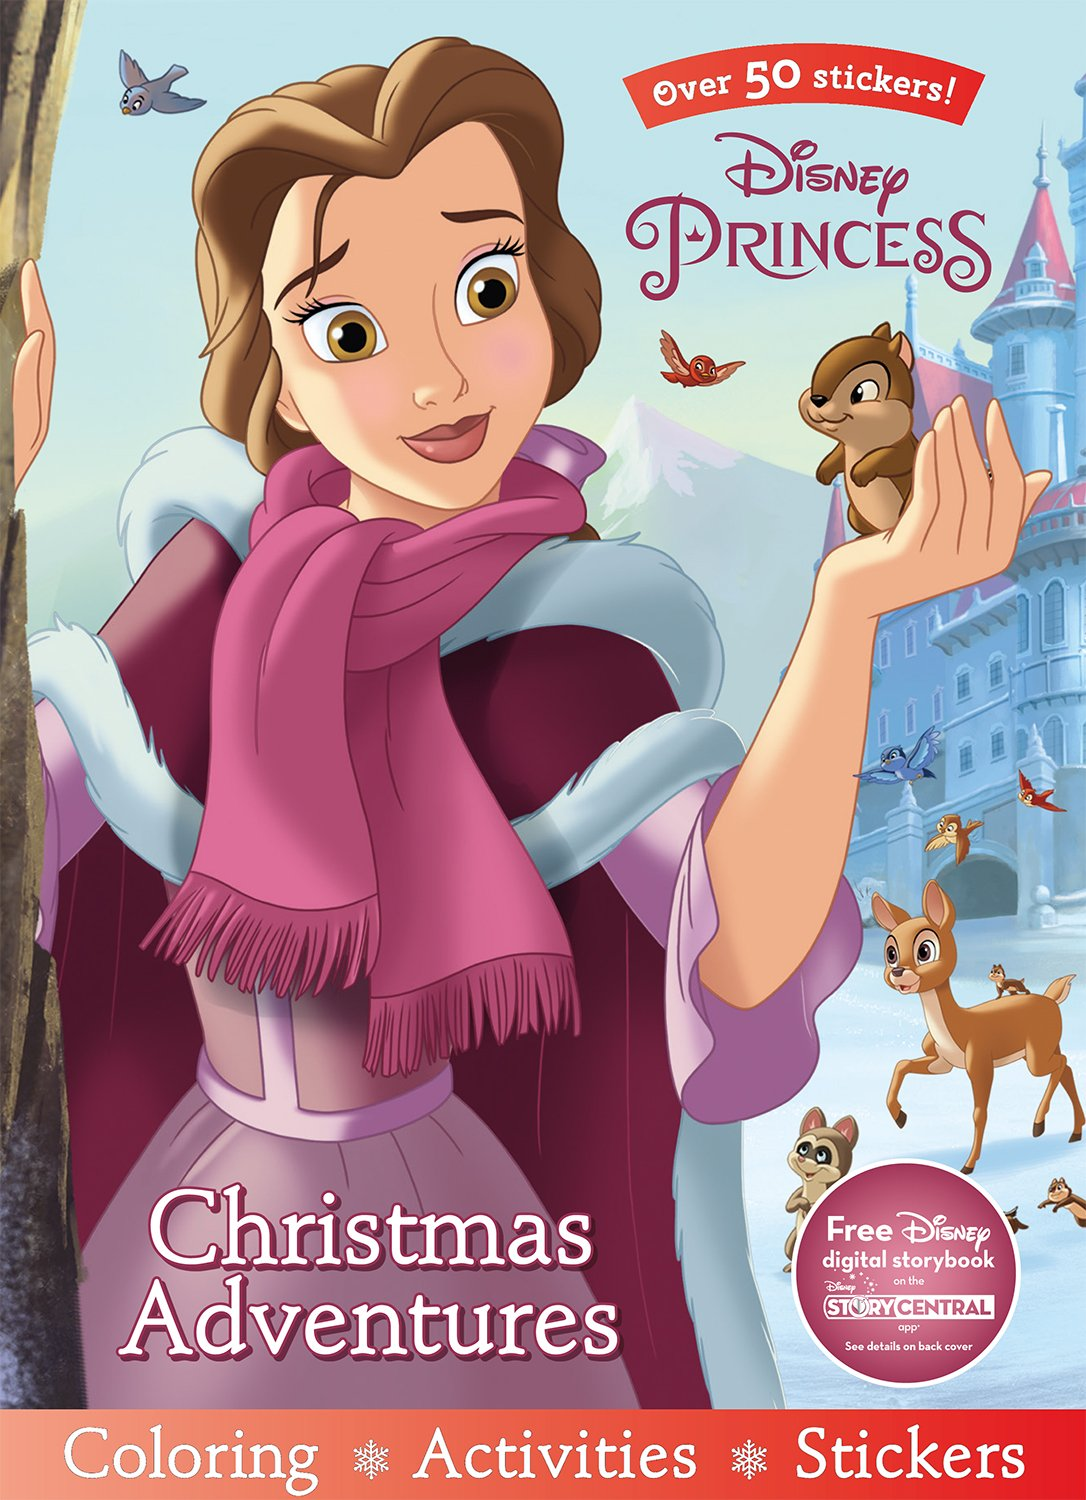 Disney Princess Christmas Adventures: Amazon.co.uk: Parragon Books ...